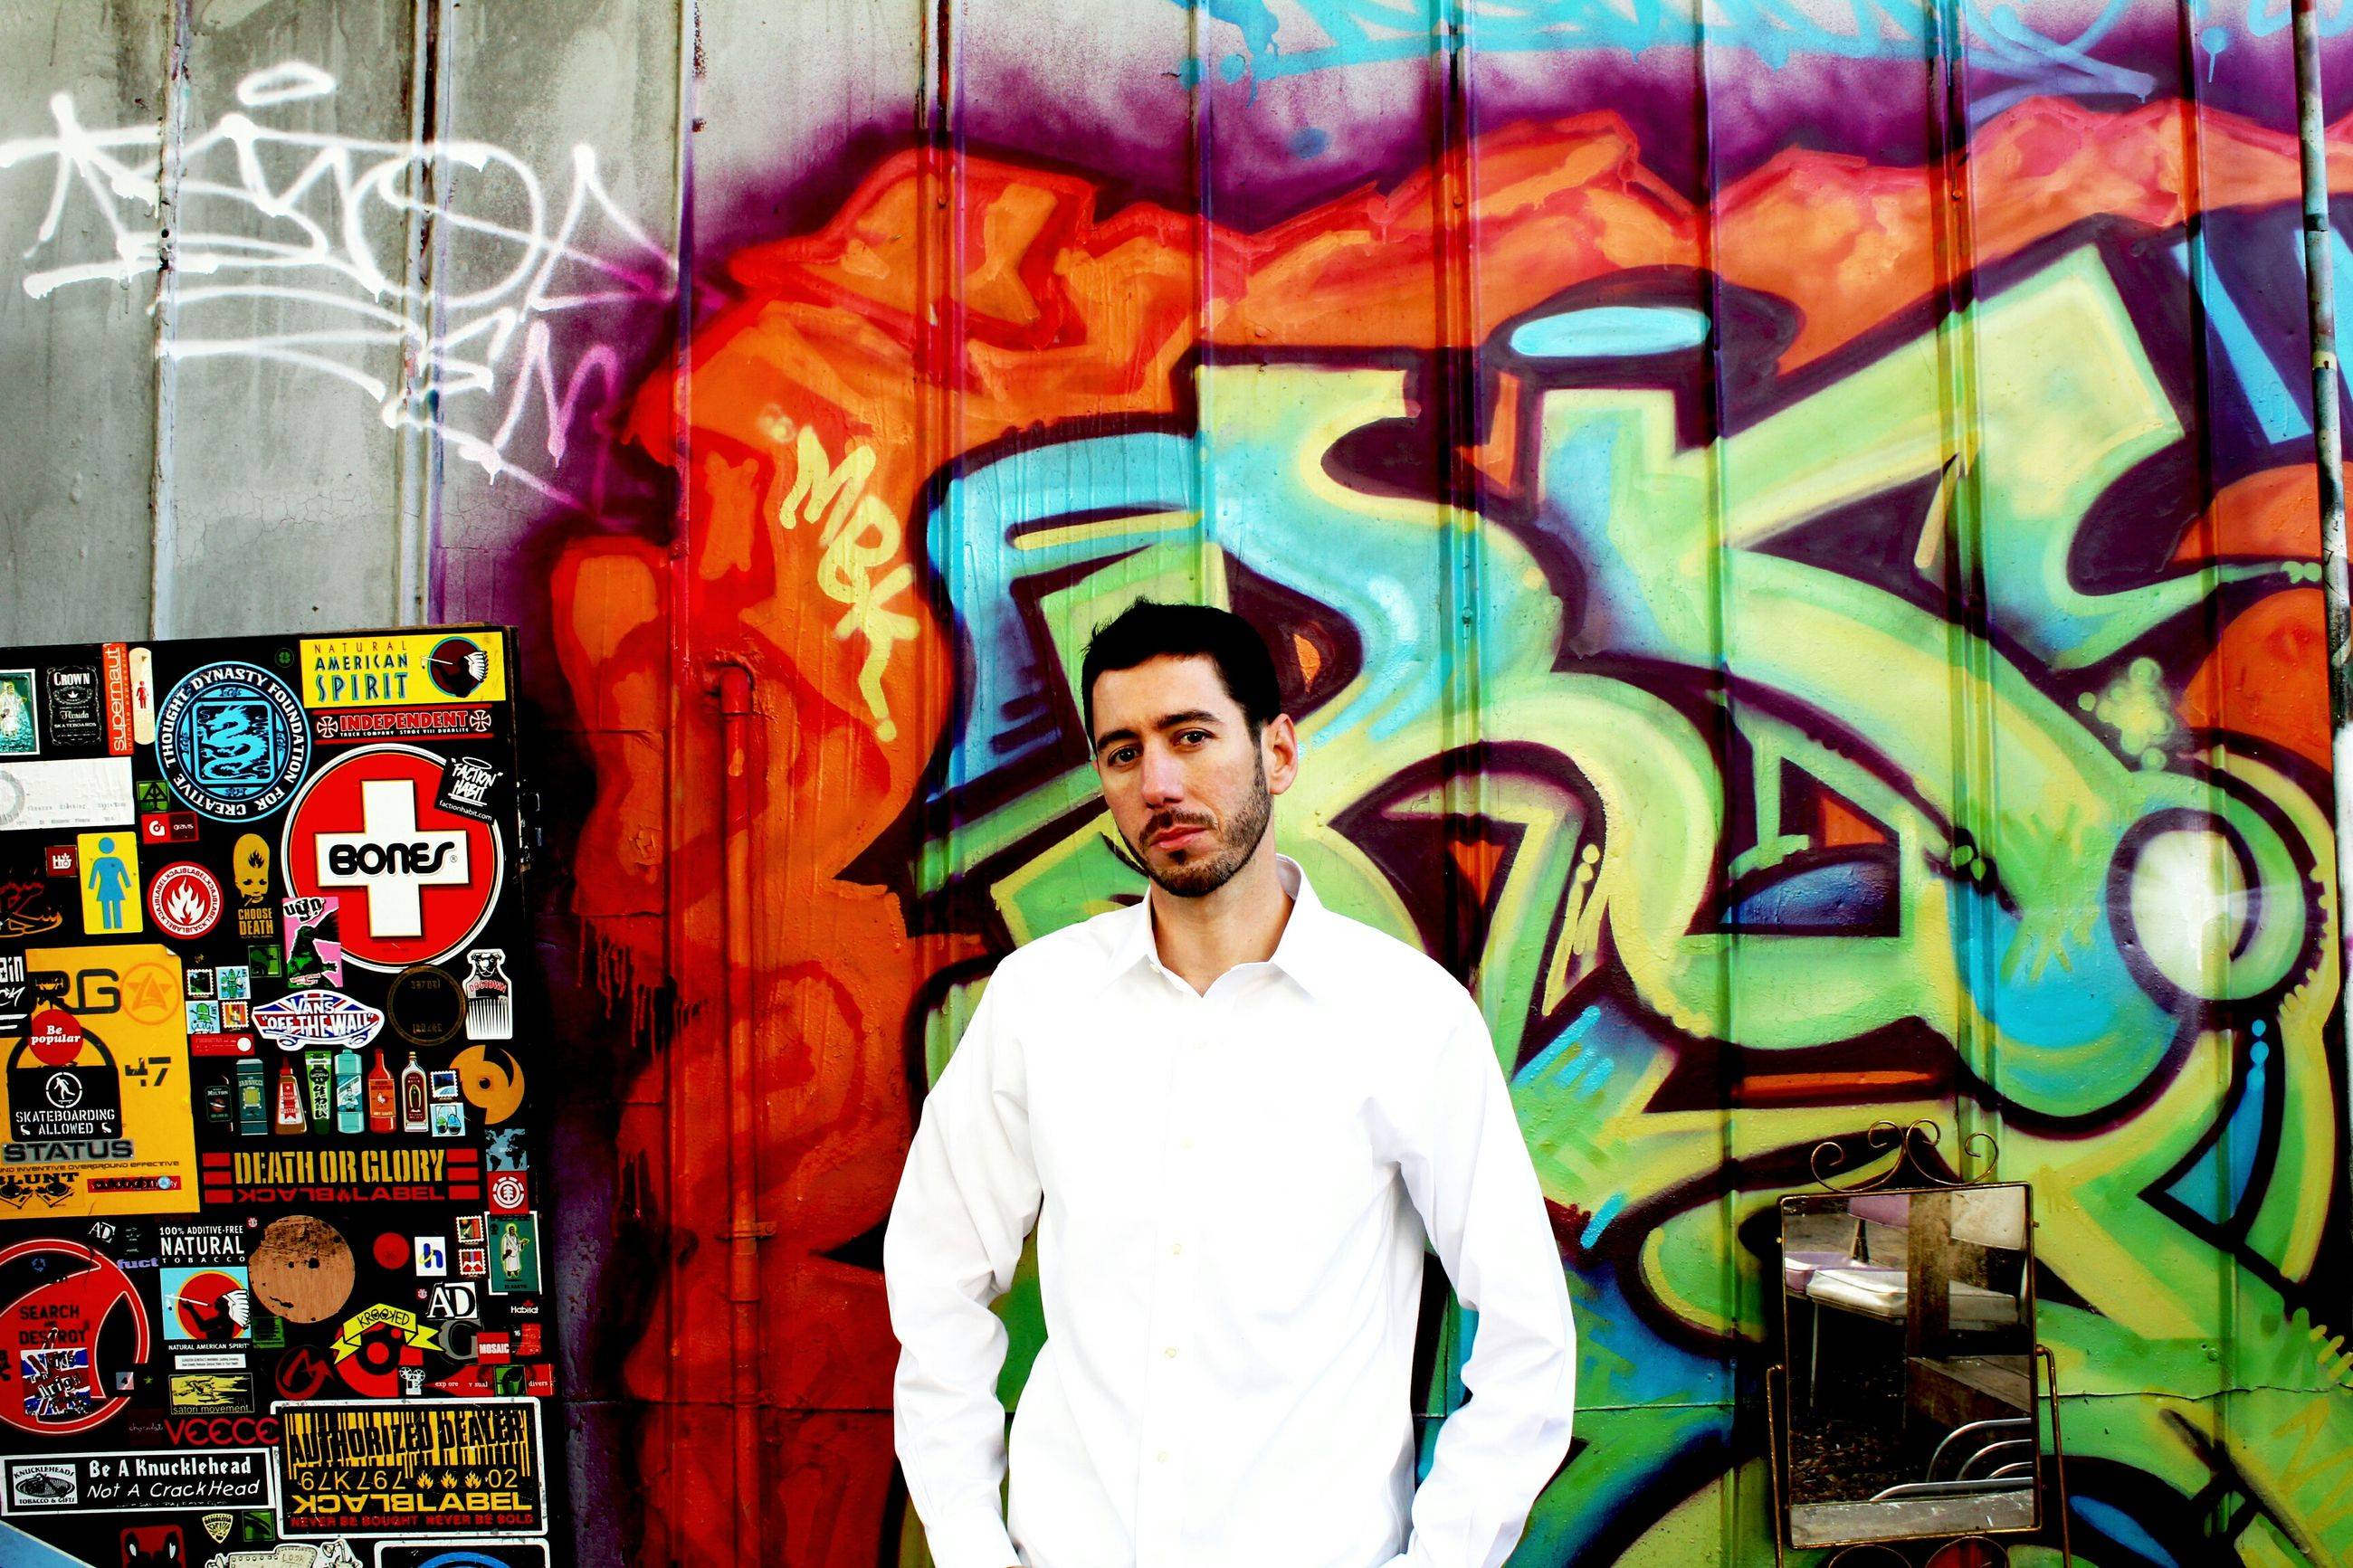 art, creativity, art and craft, graffiti, human representation, wall - building feature, multi colored, front view, looking at camera, portrait, indoors, painting, young adult, casual clothing, person, built structure